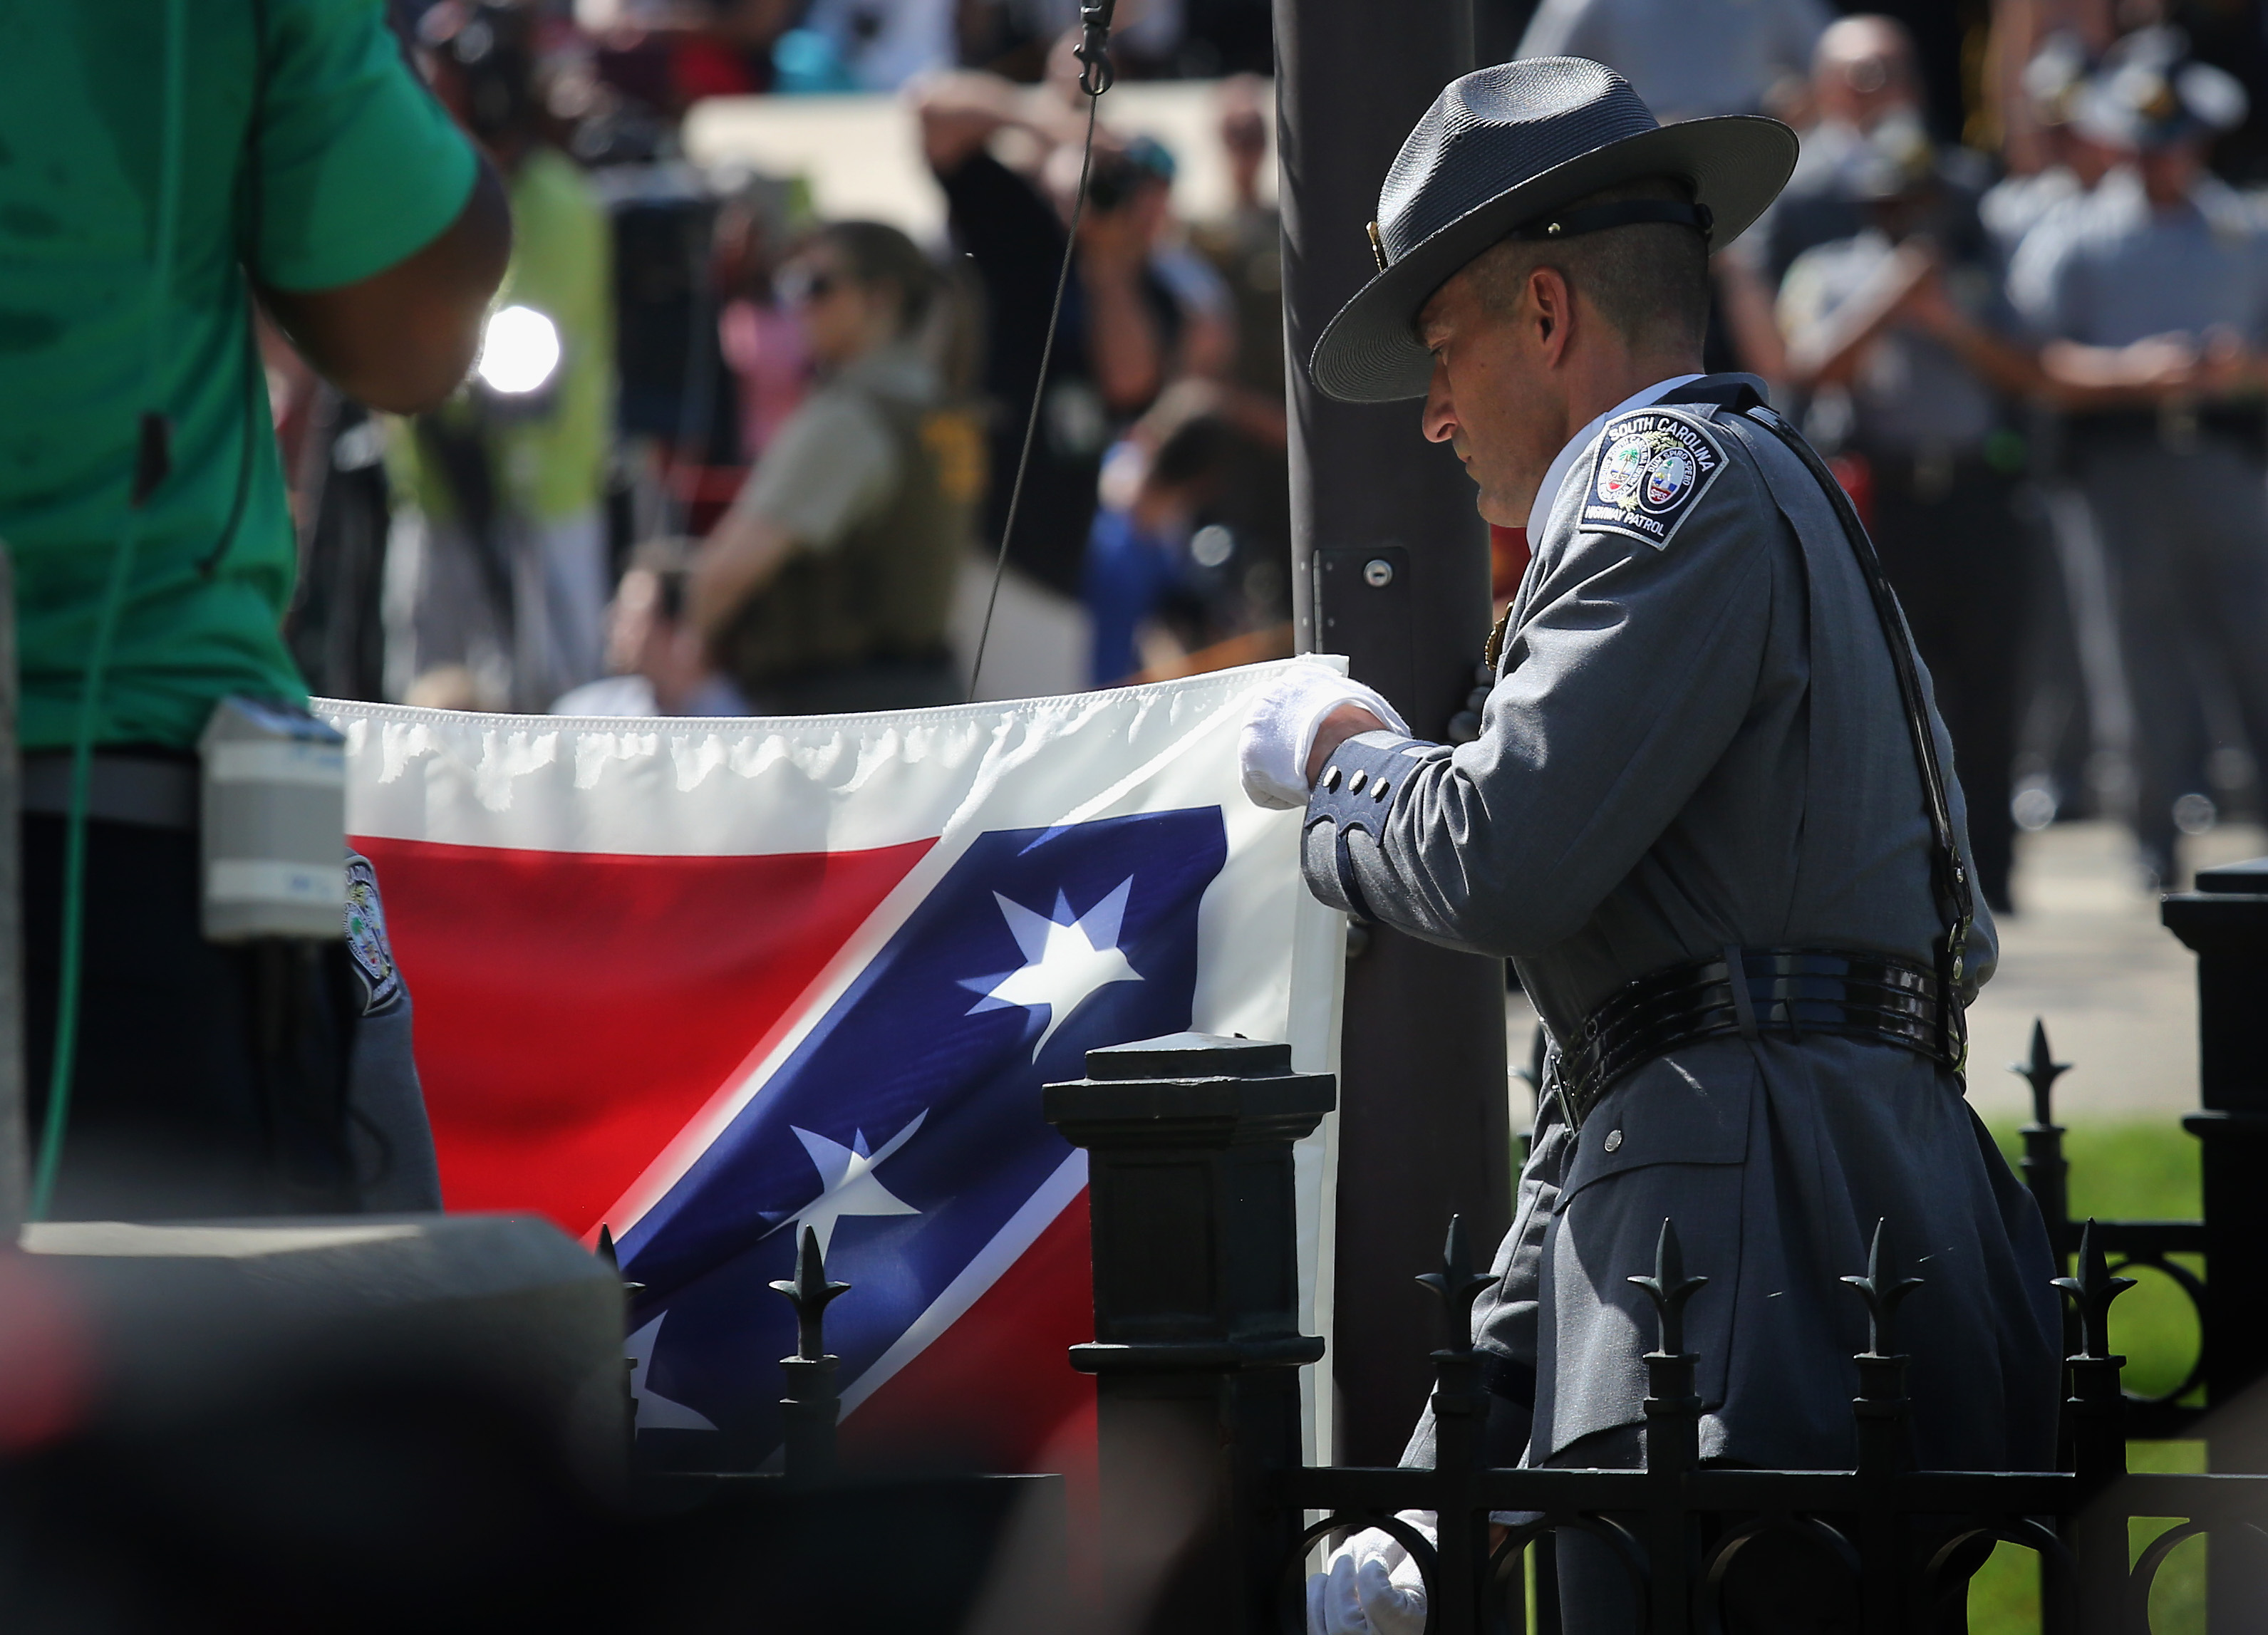 A South Carolina honor guard lowers the Confederate flag from the Statehouse grounds on July 10, 2015 in Columbia, South Carolina. Republican Governor Nikki Haley presided over the event after signing the historic legislation to remove the flag the day before.  (Photo by John Moore/Getty Images)